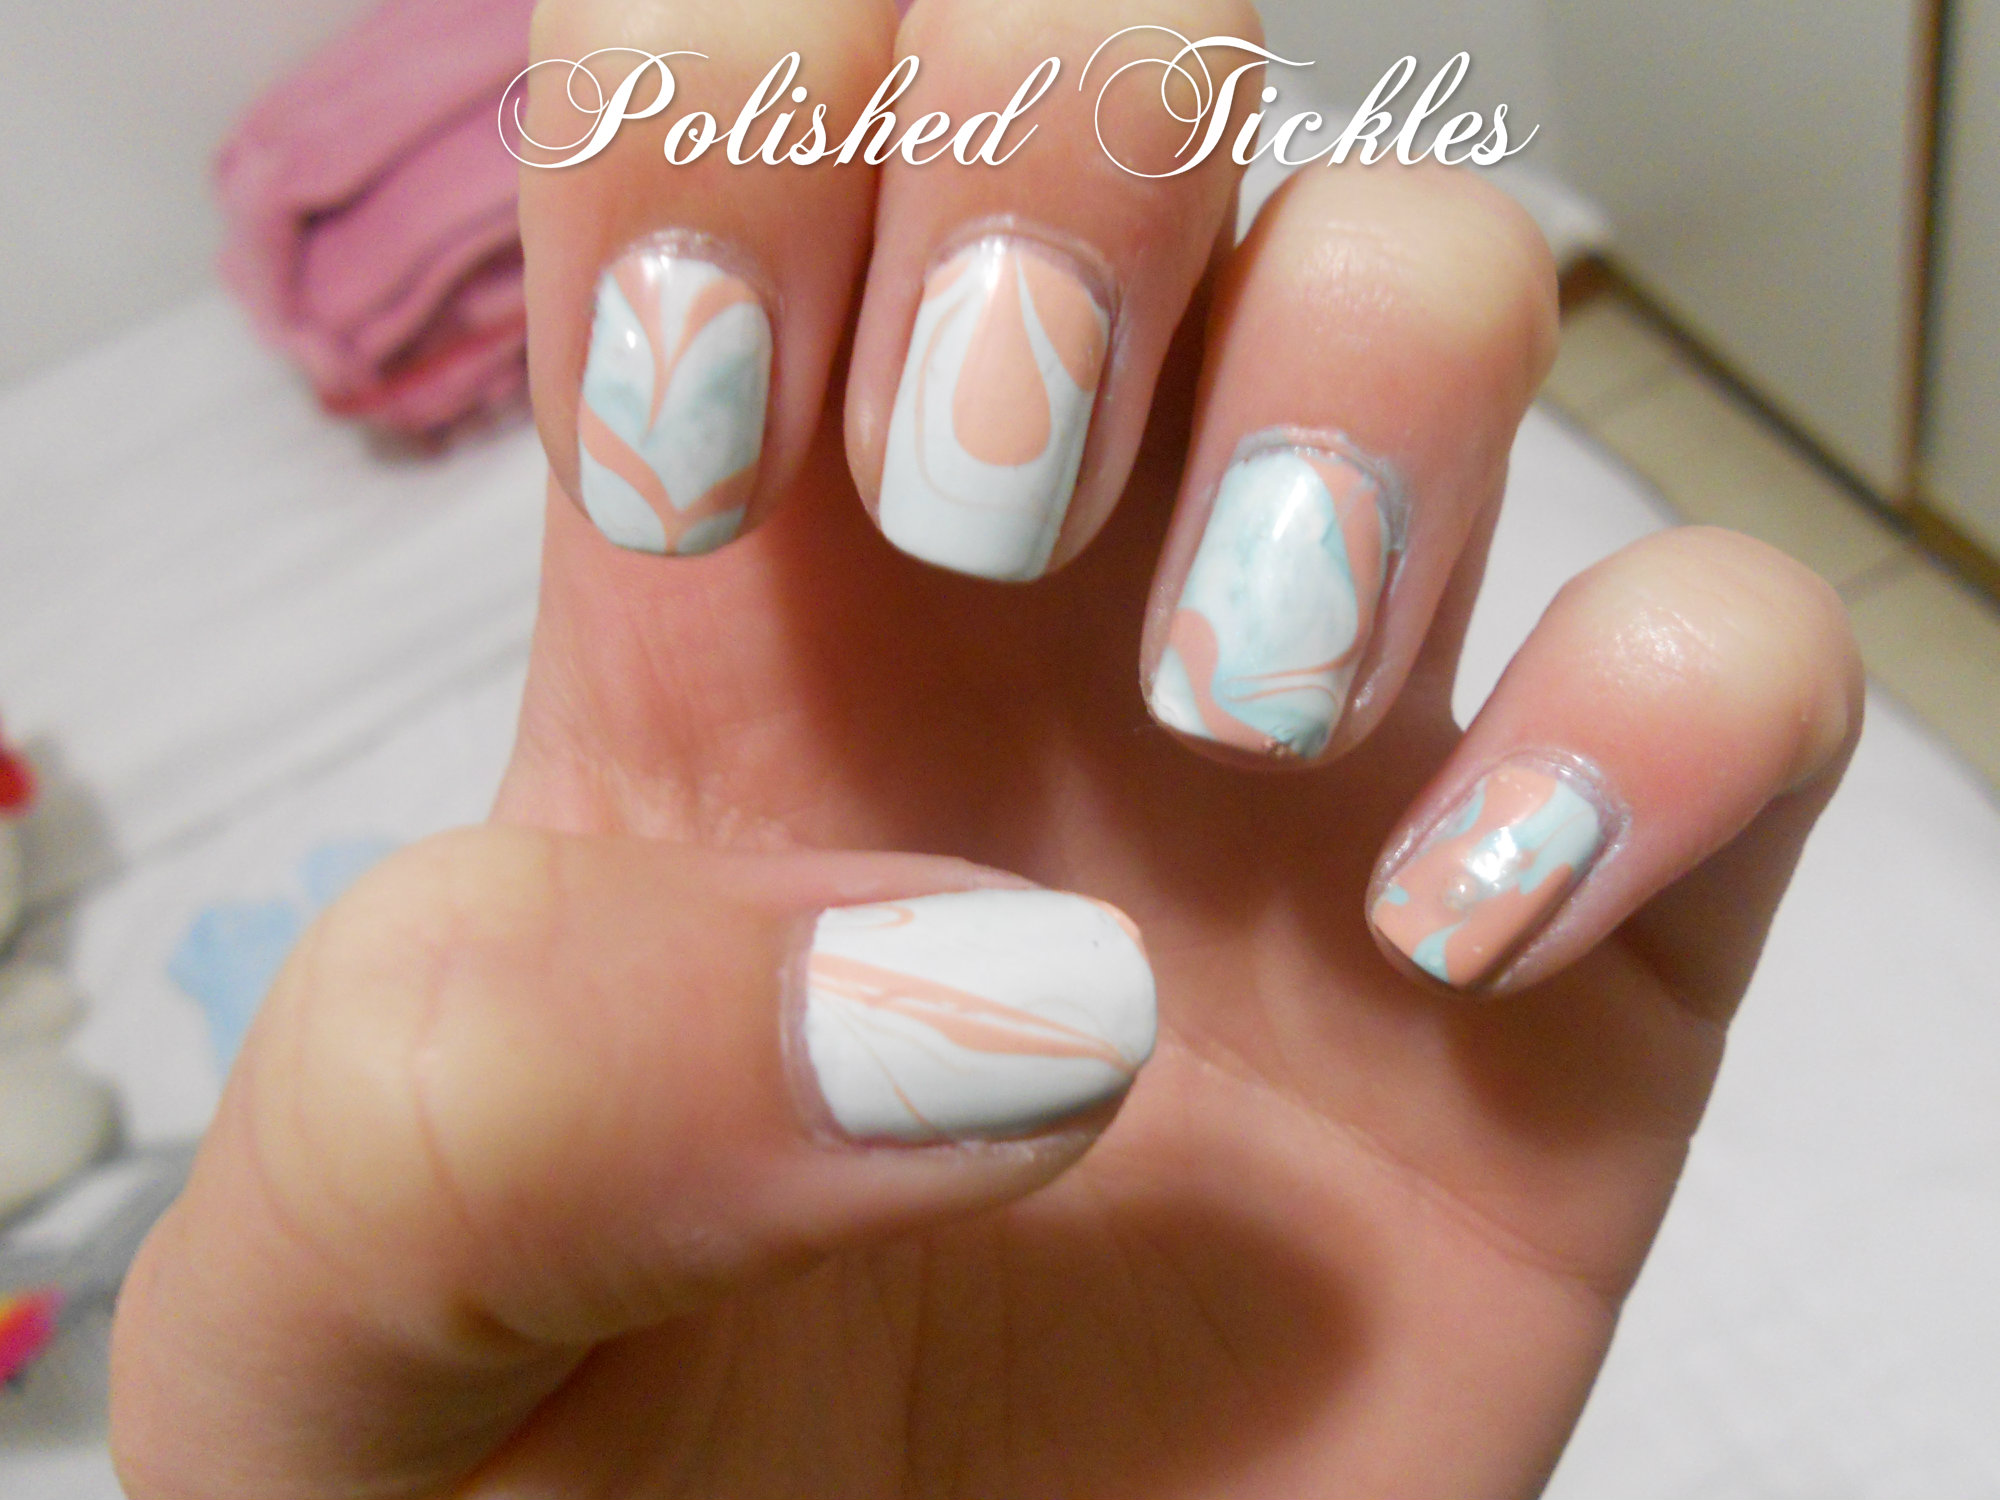 Summer Nail Art Challenge Water Marble Technique Polished Tickles